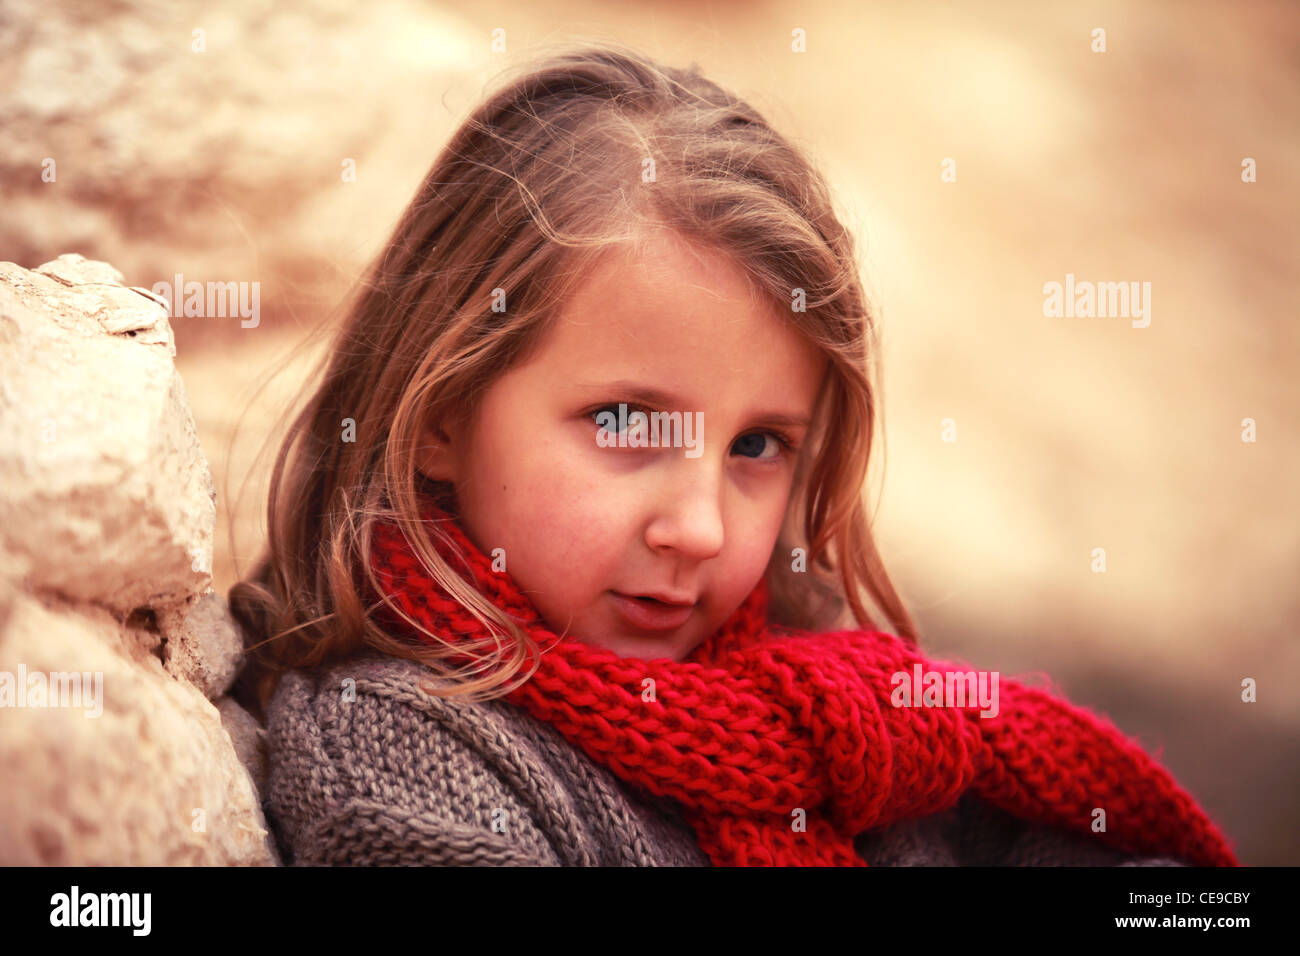 little sweetie girl child in a red scarf - Stock Image